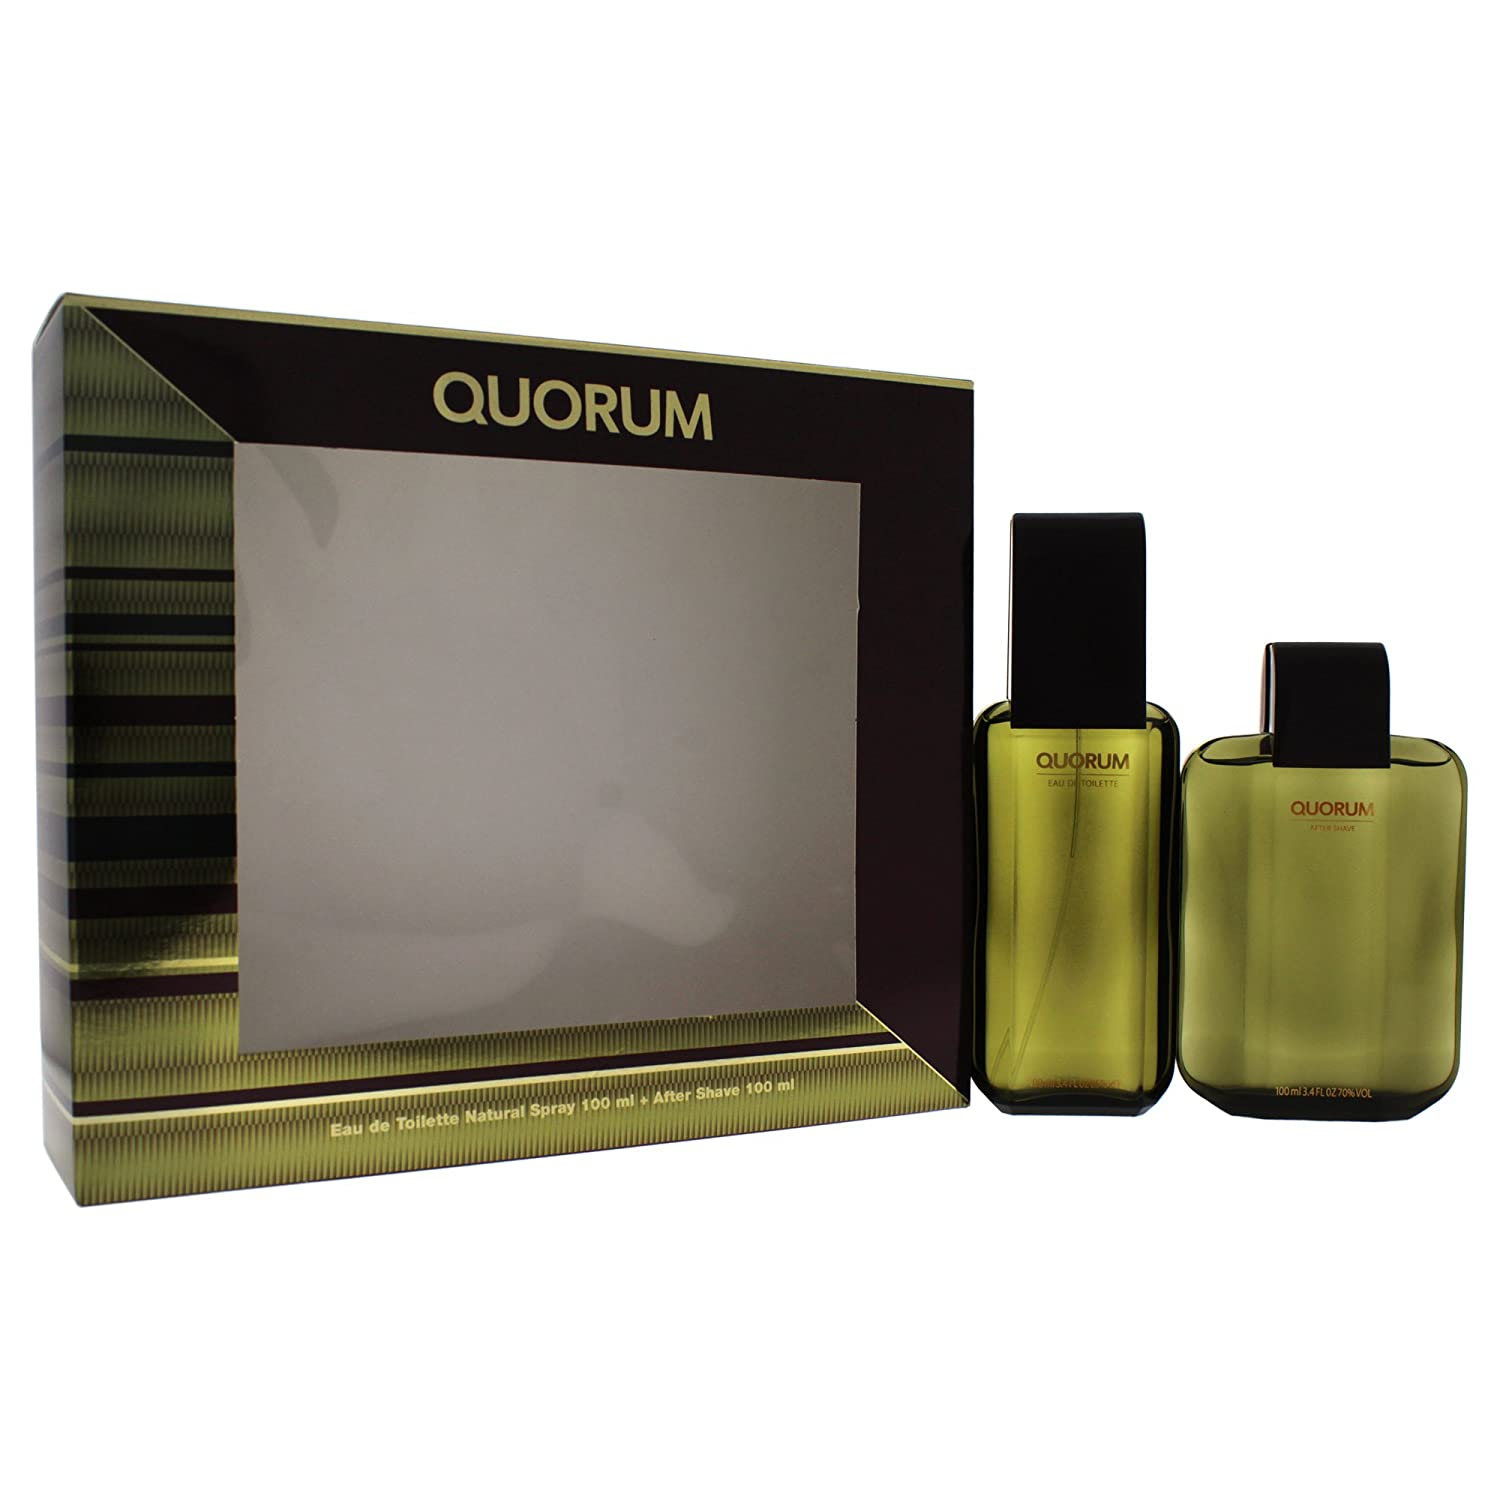 Puig Quorum Eau De Toilette 100ml Spray with Aftershave Gift Set GST3862